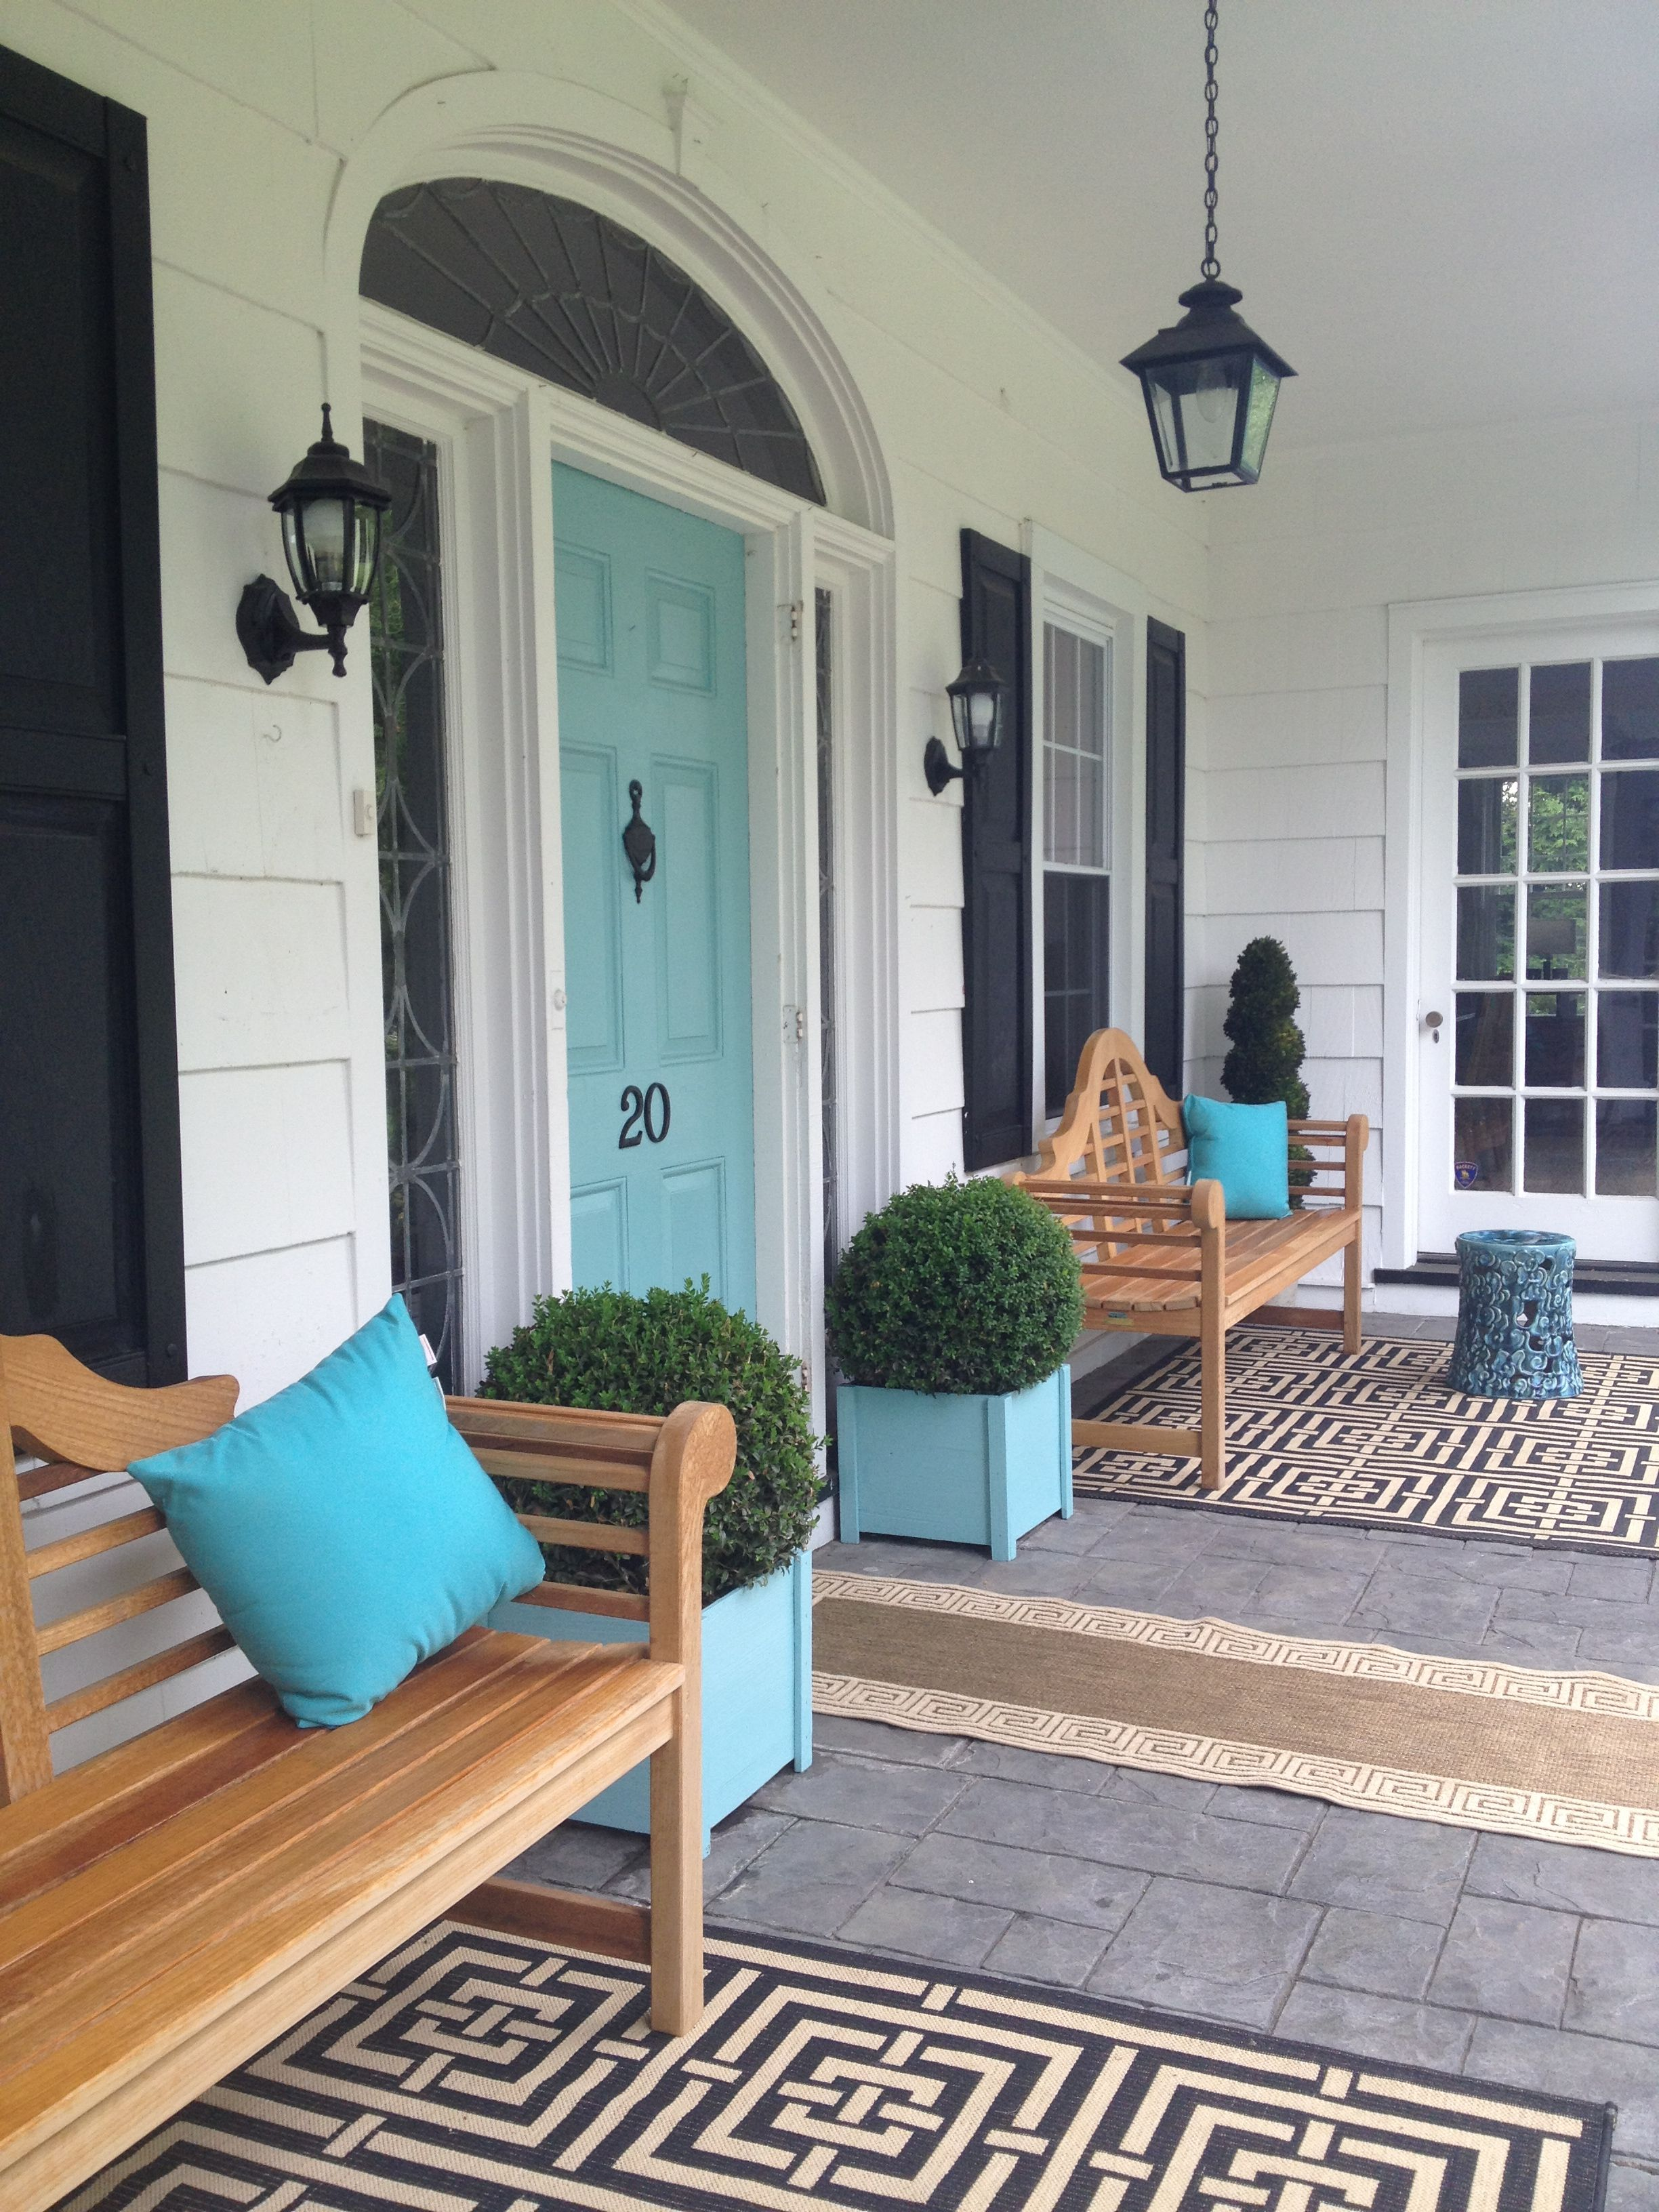 7 Best Teal And Navy Blue Front Door Colours Benjamin And Sherwin Porch Design Front Porch Design House Colors